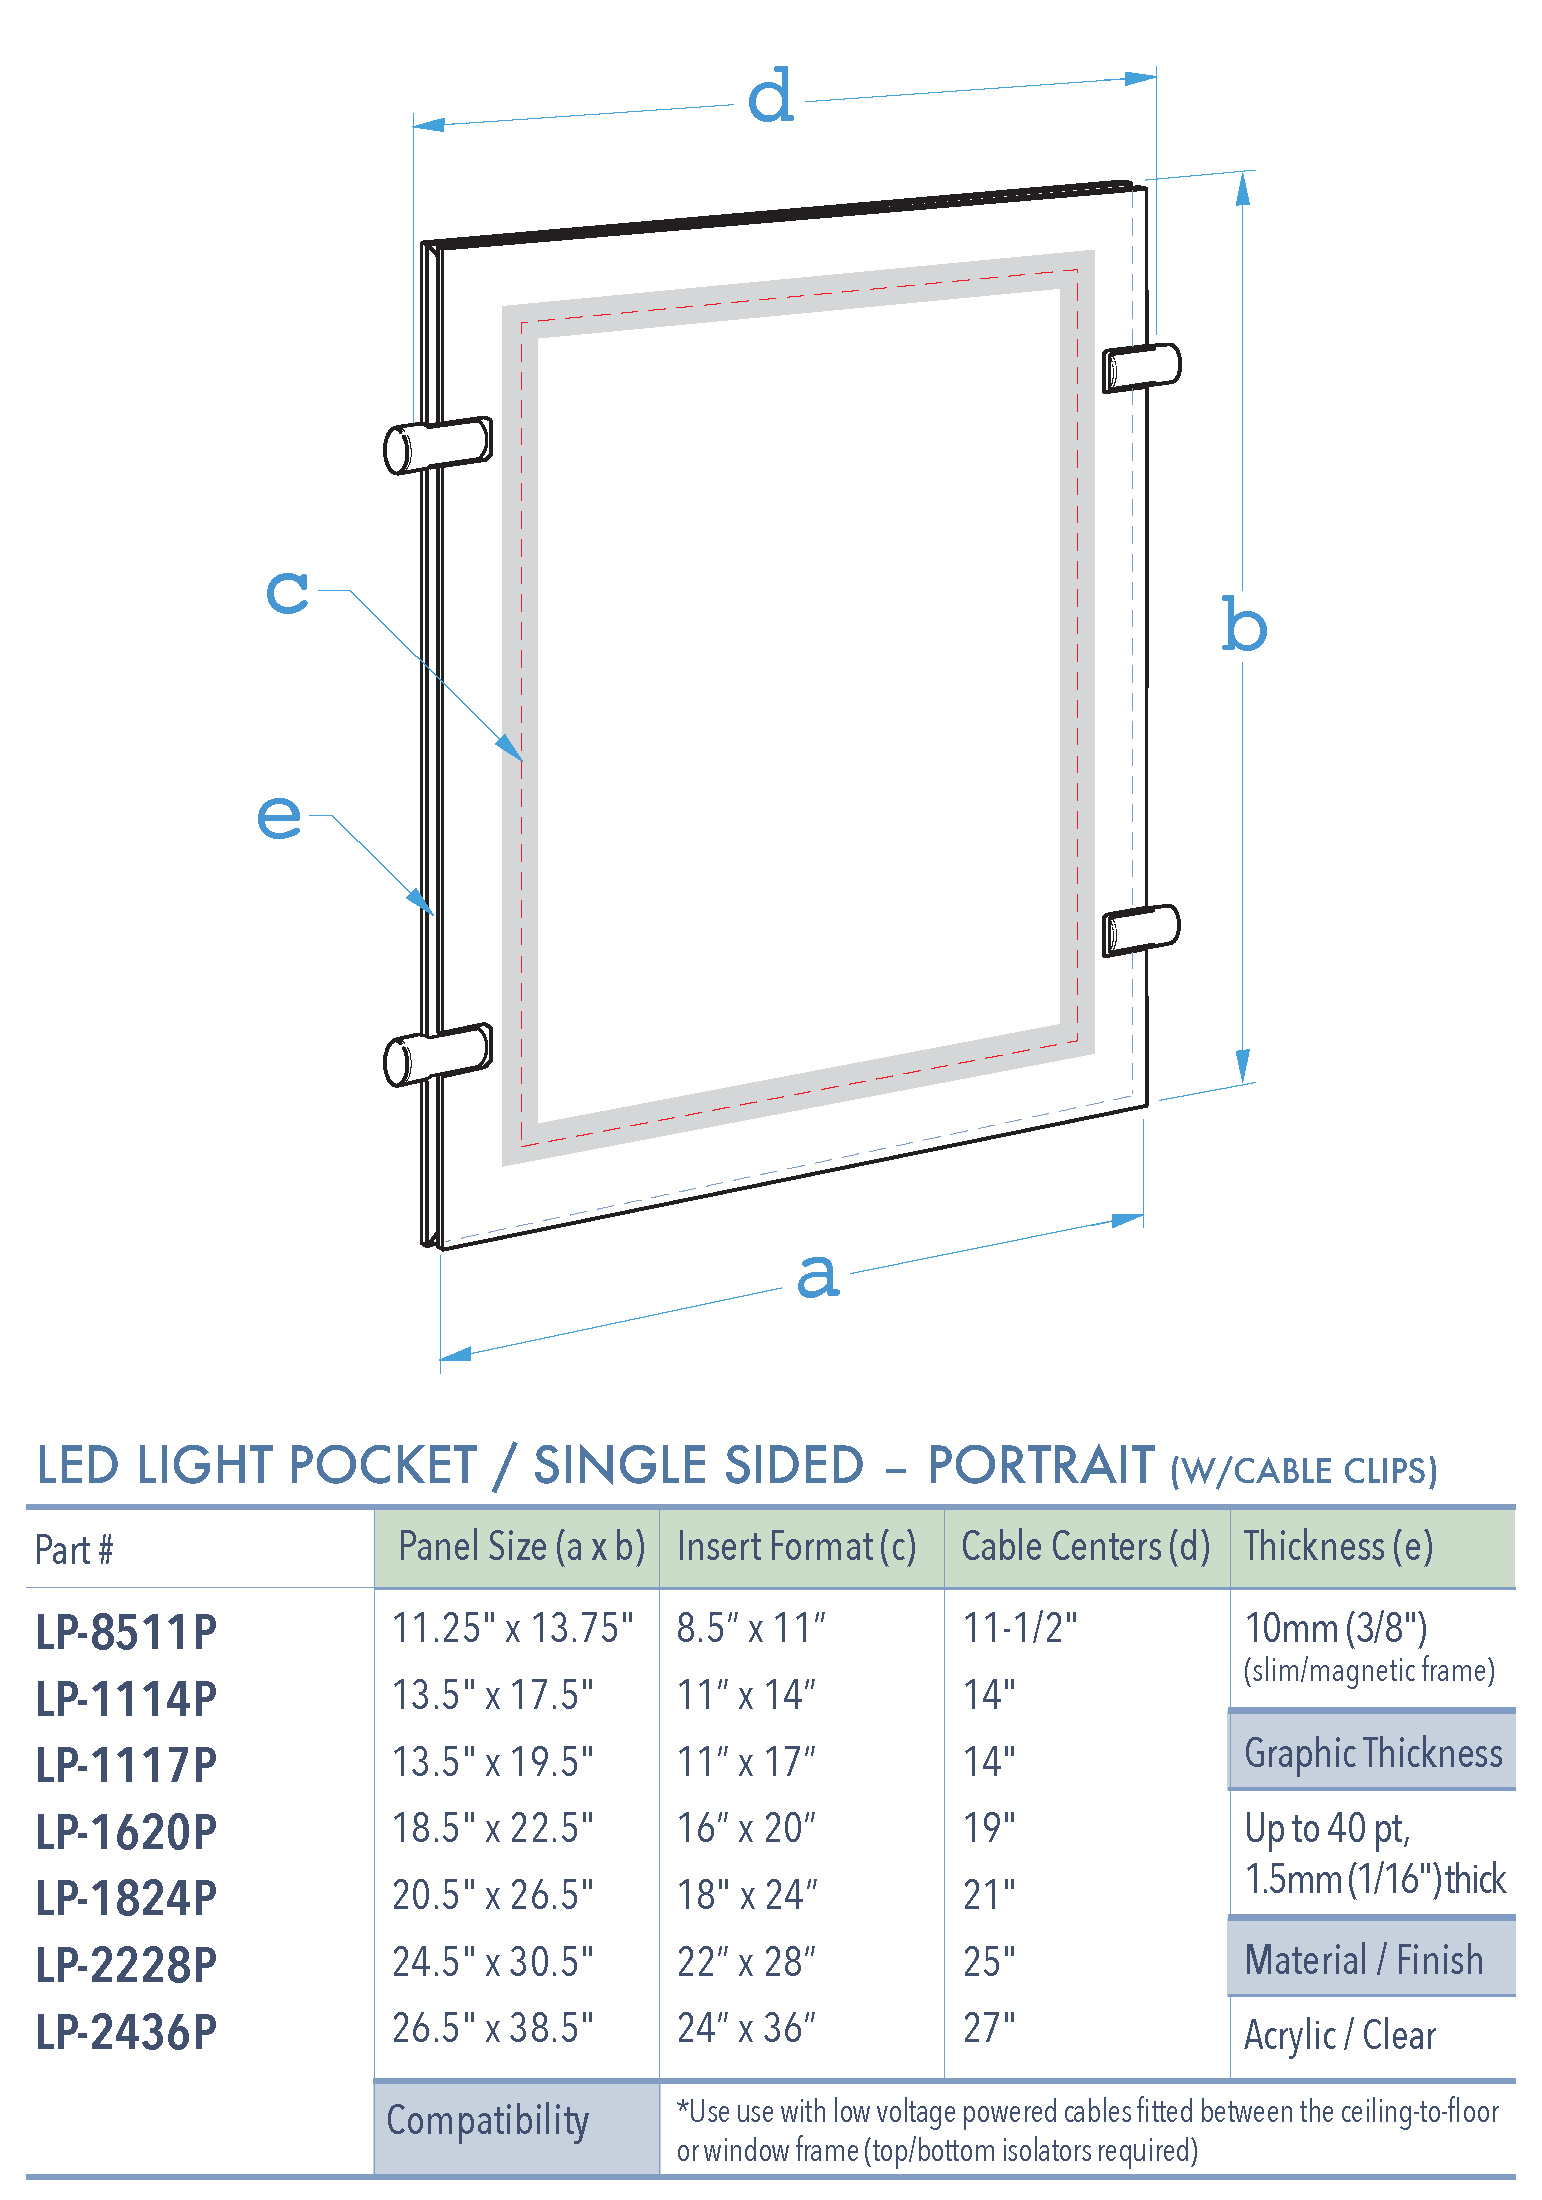 Specifications for LP-LED-POCKET-PRT-SG